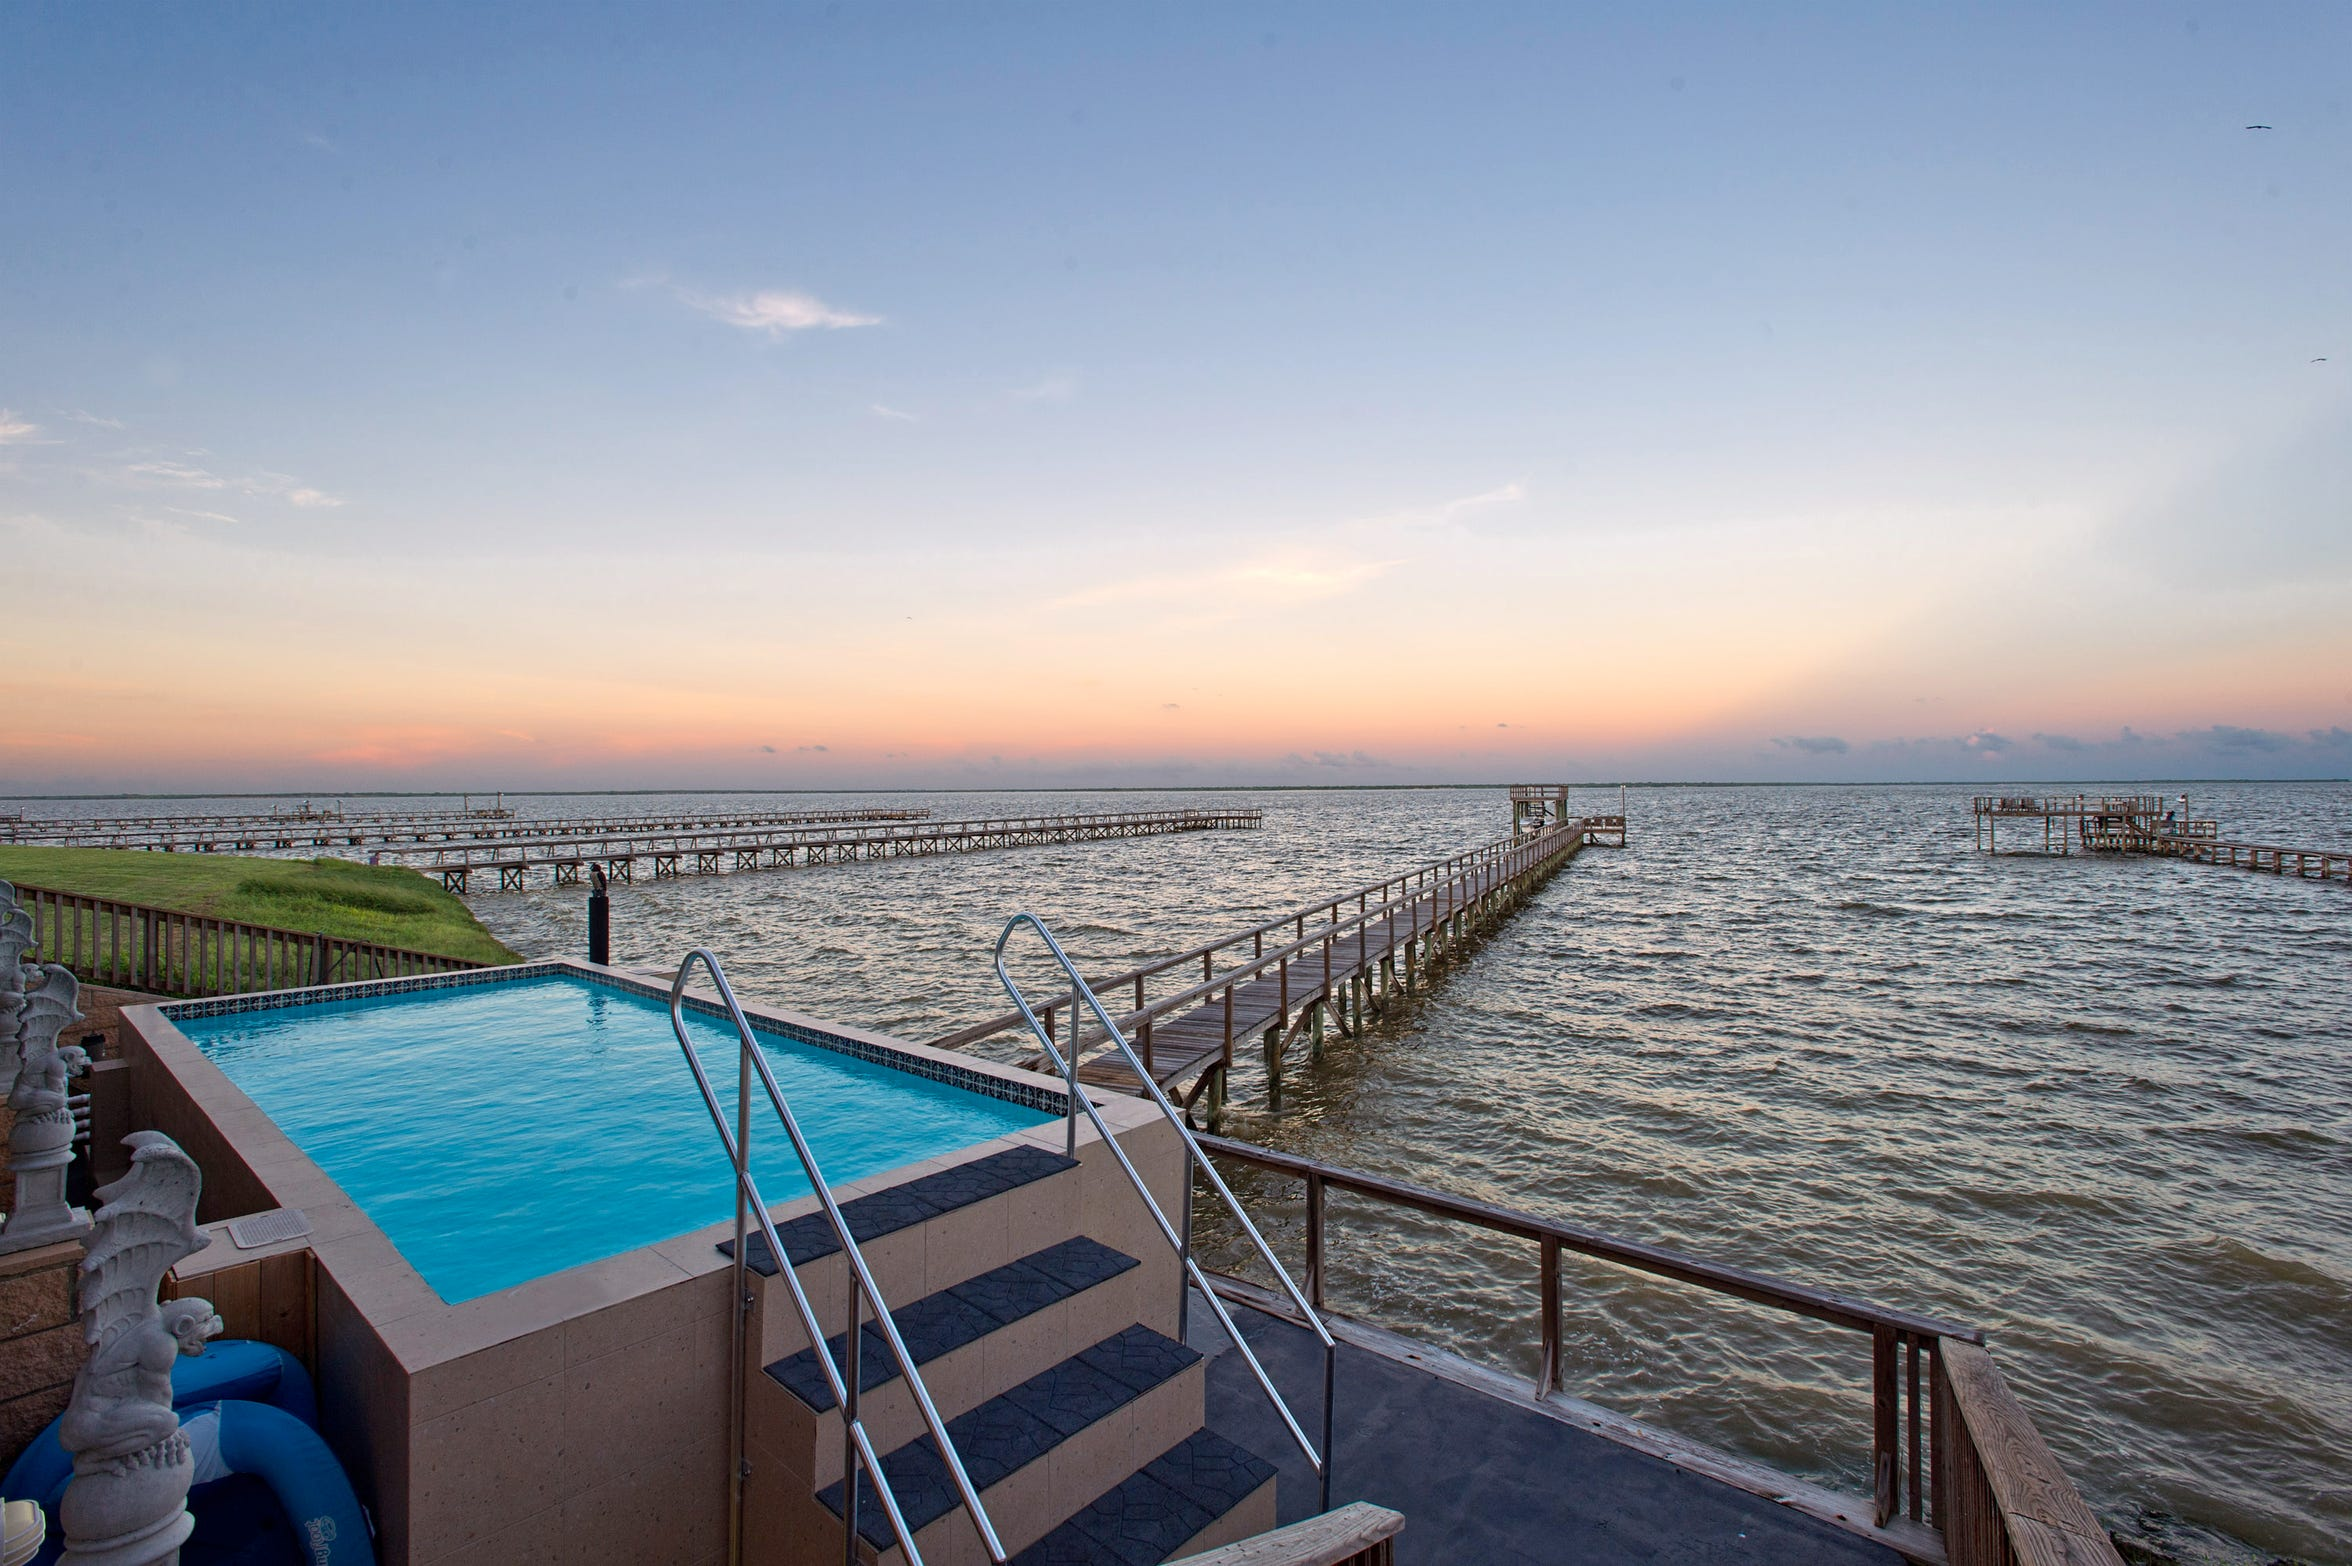 Climb into the unique swimming pool on the shore of Baffin Bay, home to some of the best fishing on the Texas coast.  All this plus a 300' private lighted fishing pier w/fish cleaning station and electric boat lift.